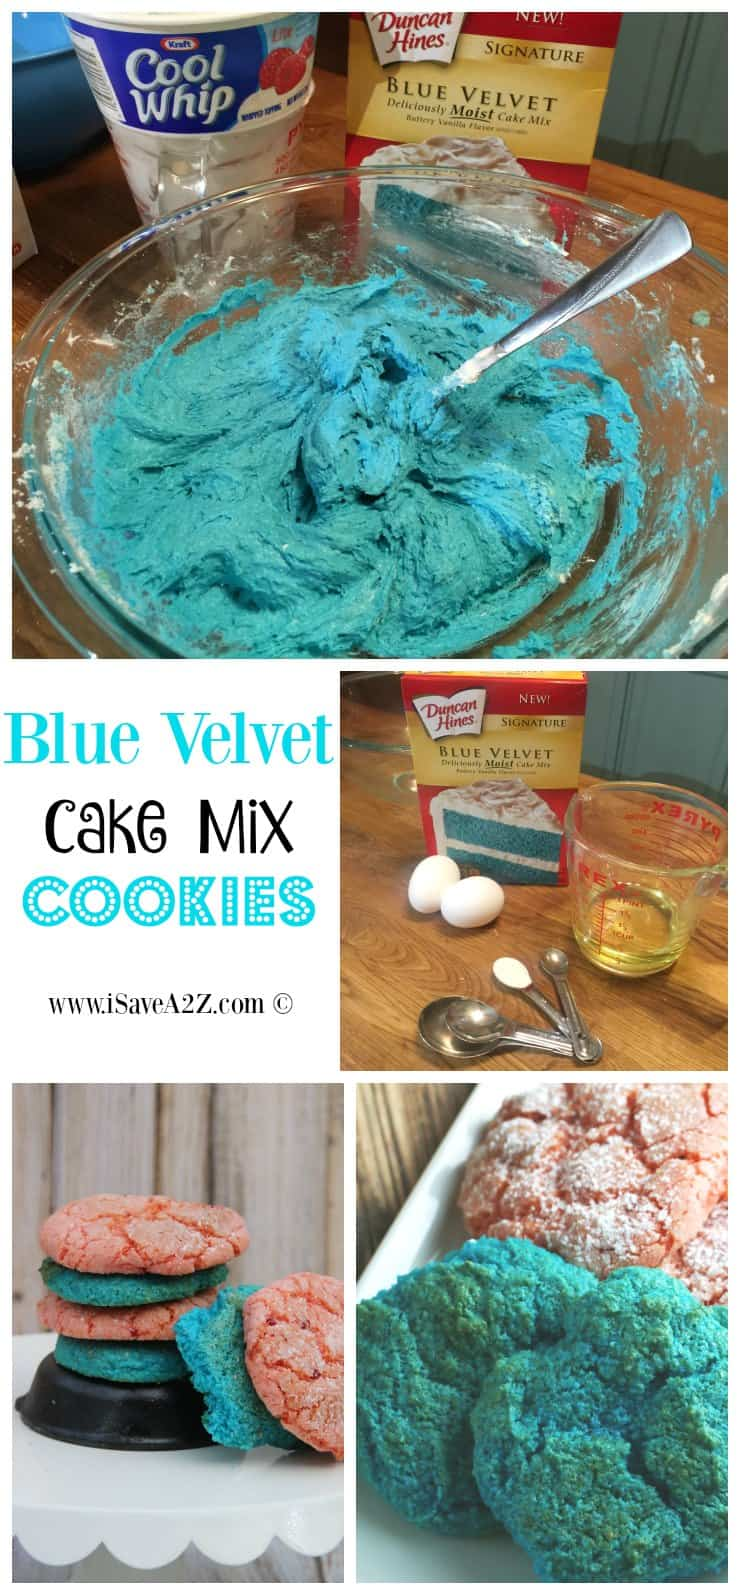 Blue Velvet Cake Mix Cookies Recipe